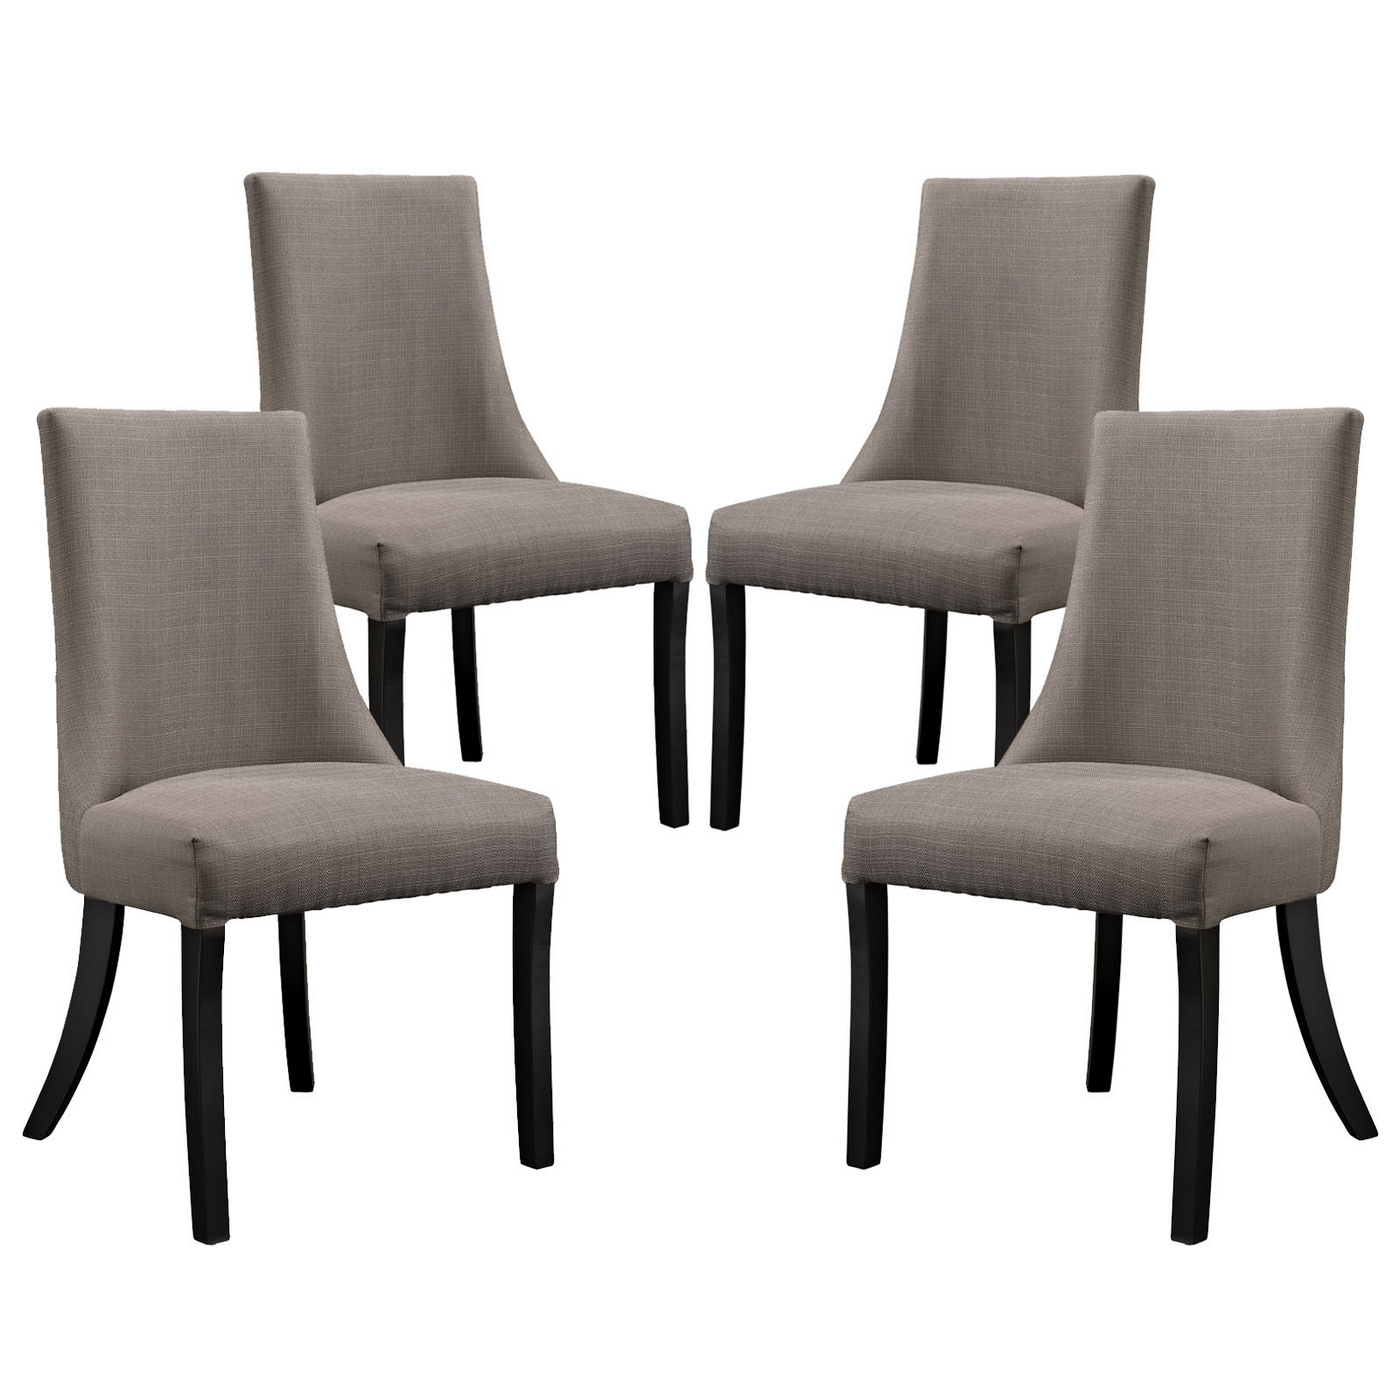 Grey Wood Dining Chairs Set Of 4 Reverie Upholstered Dining Side Chair With Wood